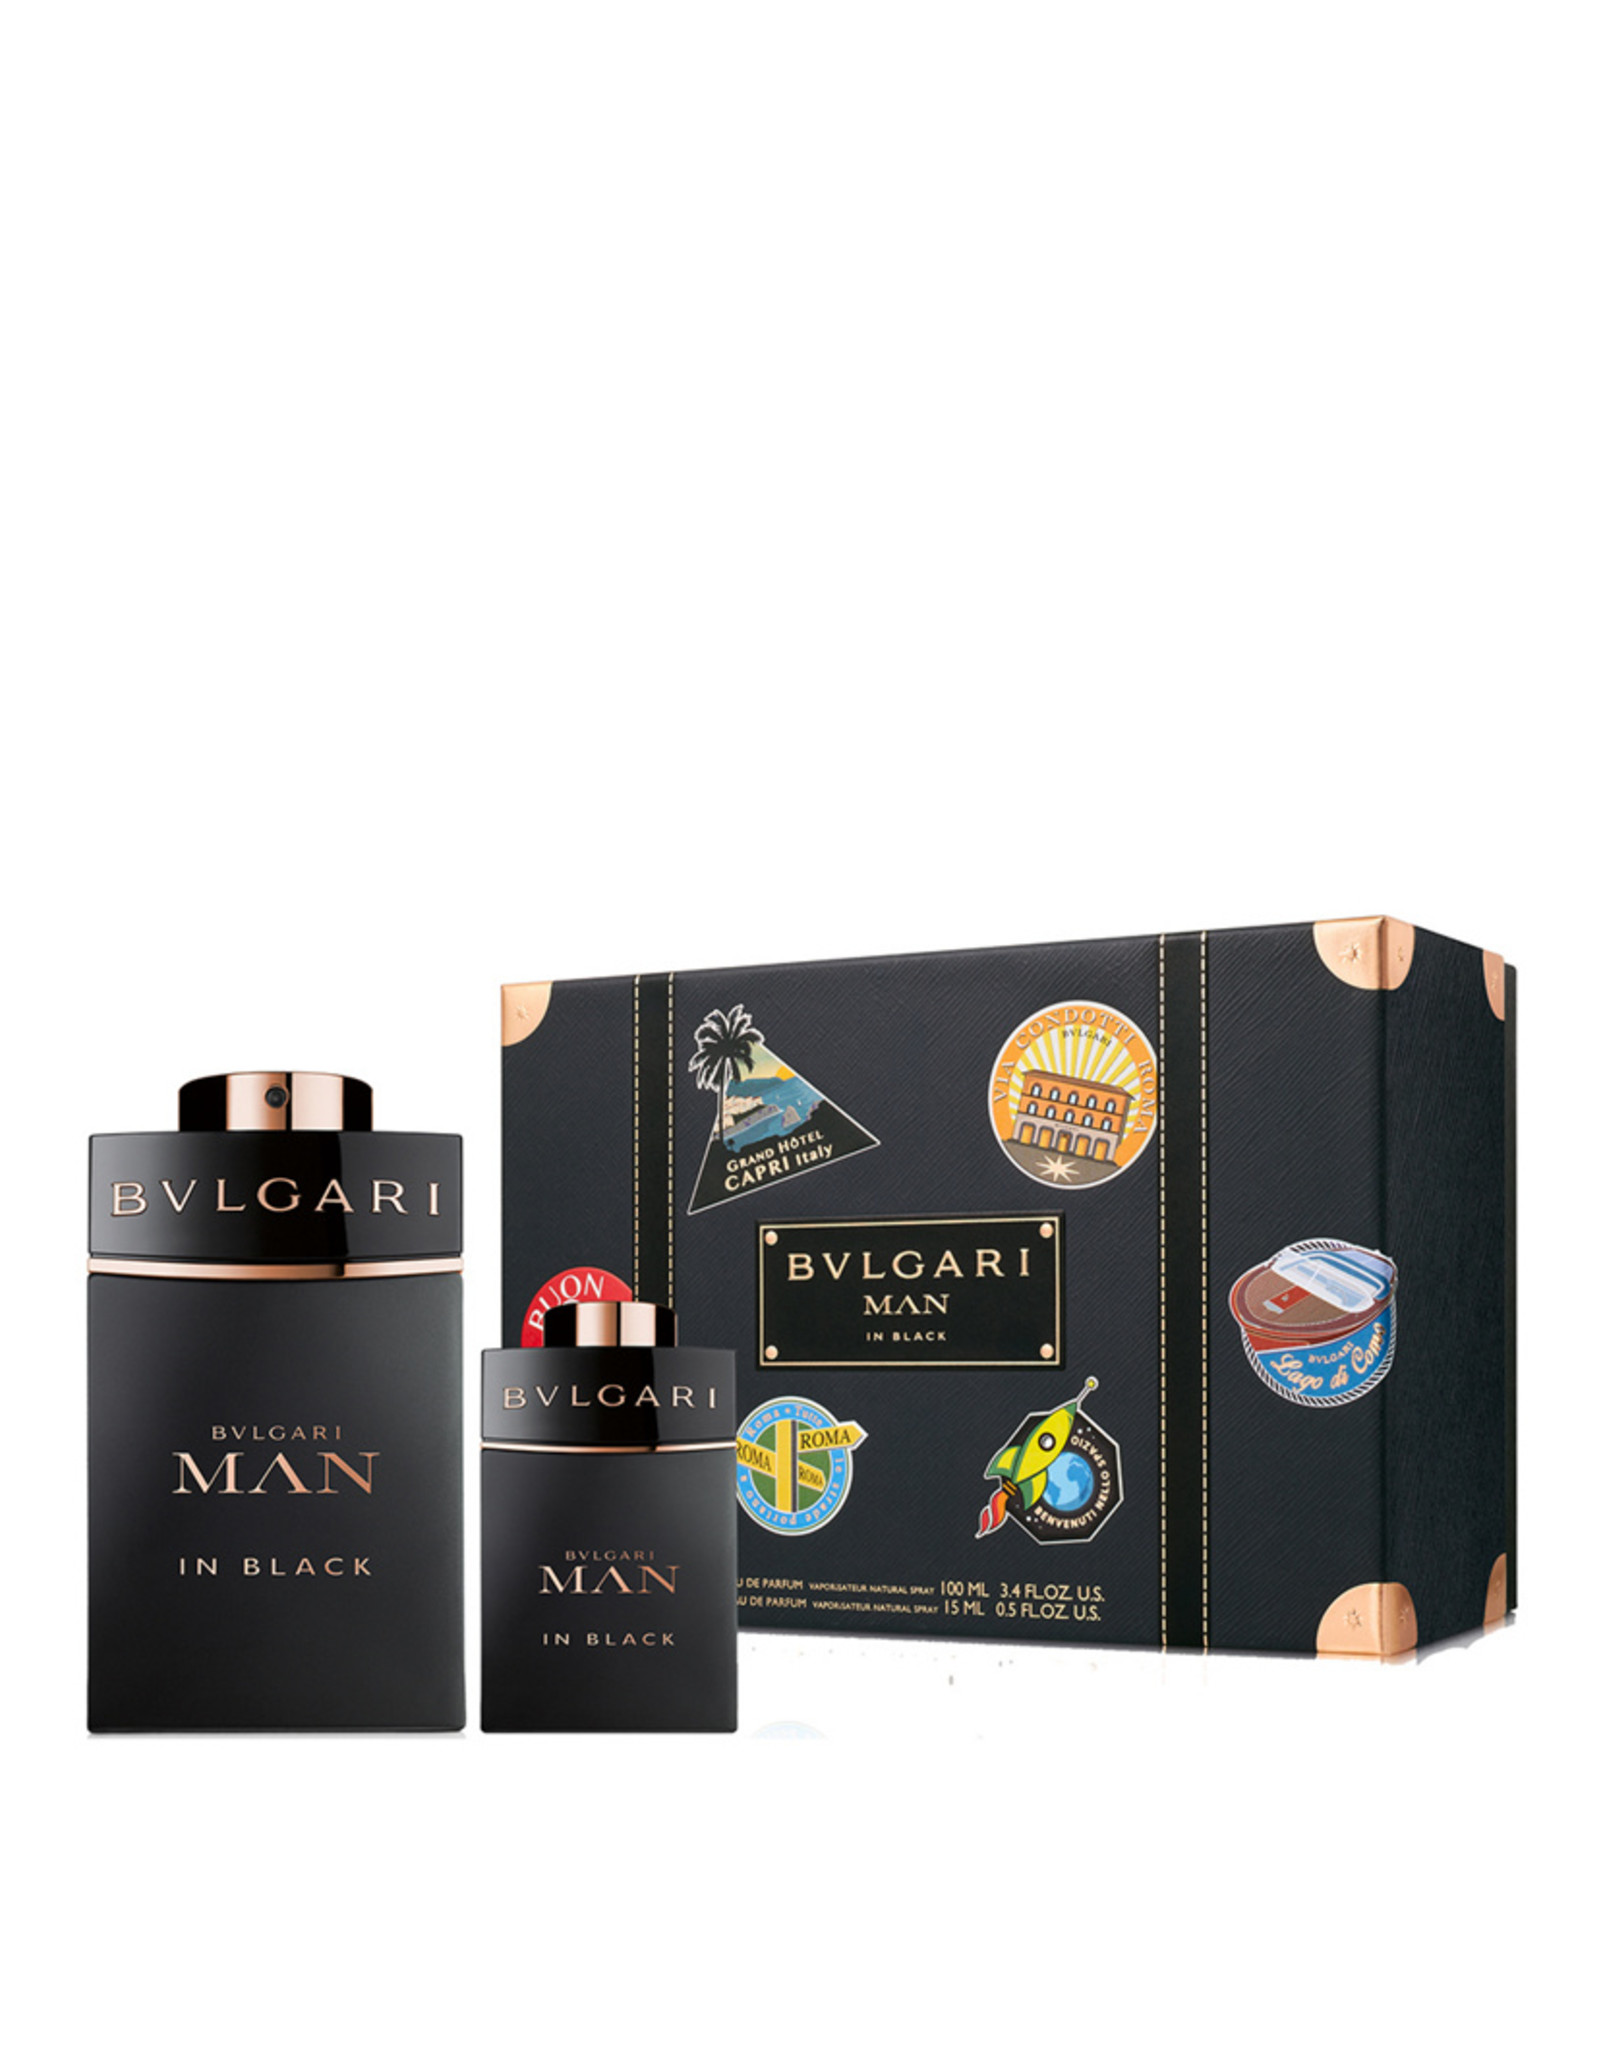 BVLGARI BVLGARI MAN IN BLACK 2pc Set (15ML MINI)